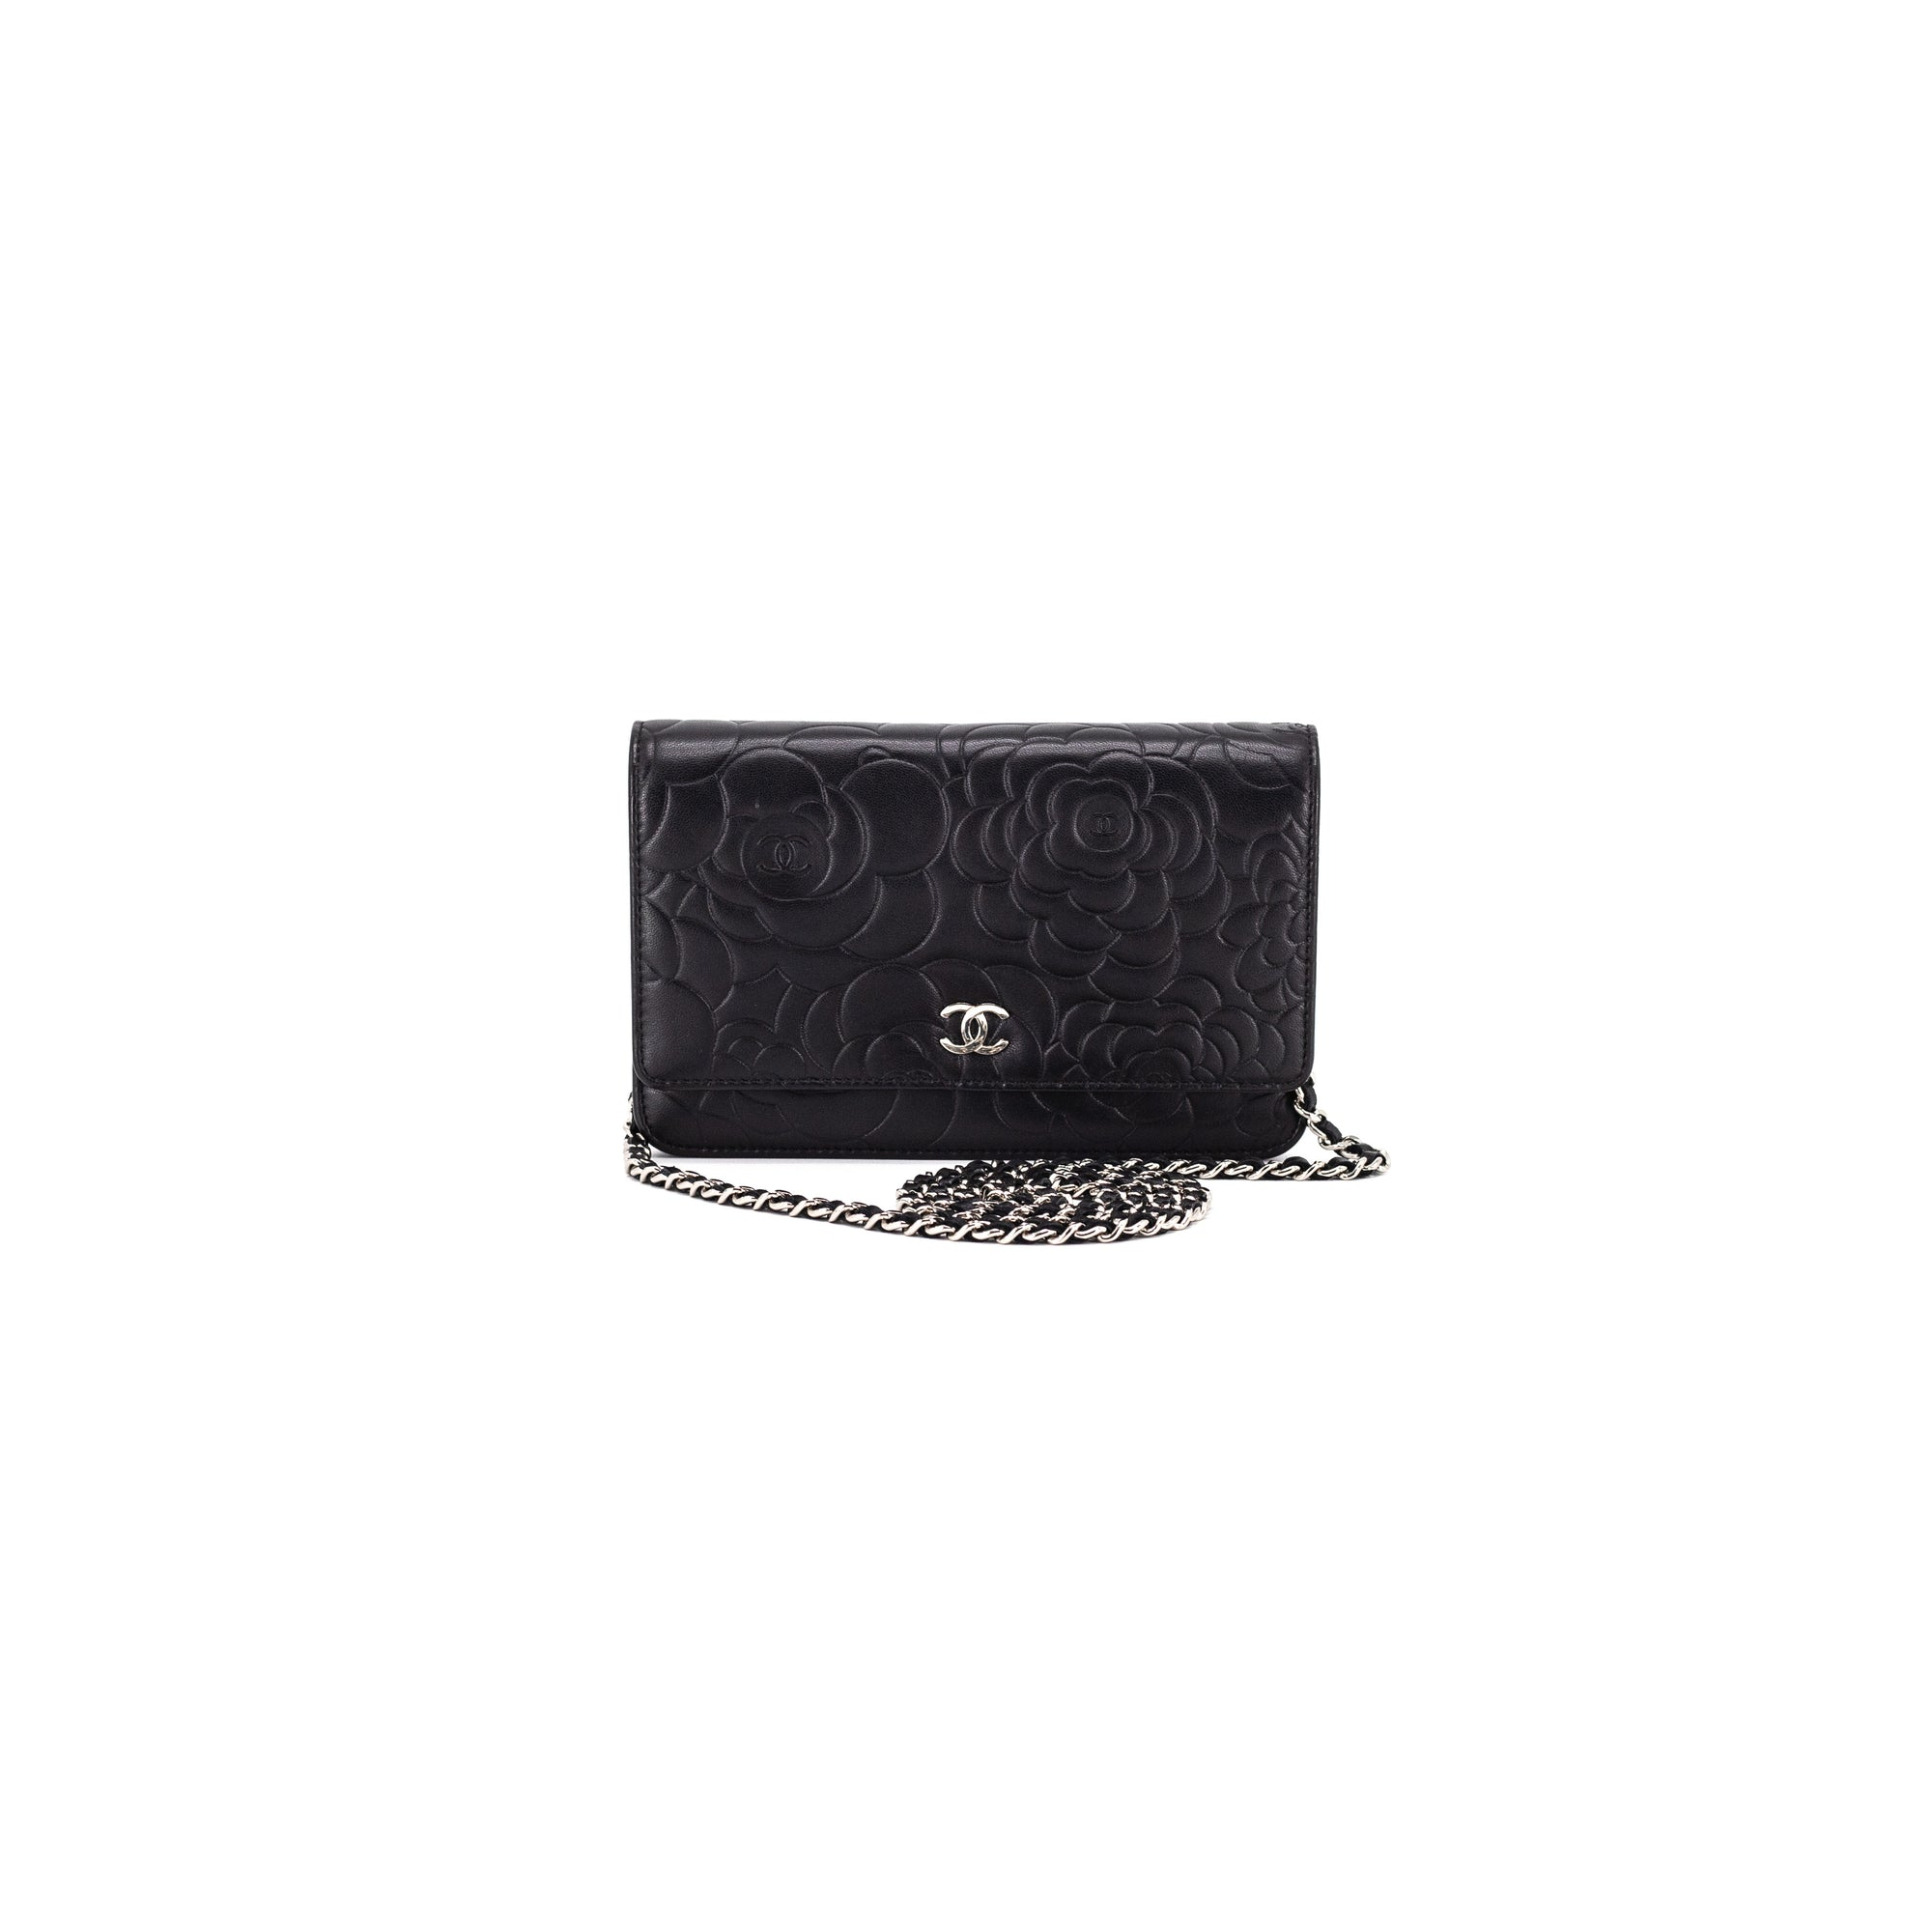 f3a3199f4e6d5d CHANEL Lambskin Camellia Embossed Wallet On Chain WOC Black - THE PURSE  AFFAIR